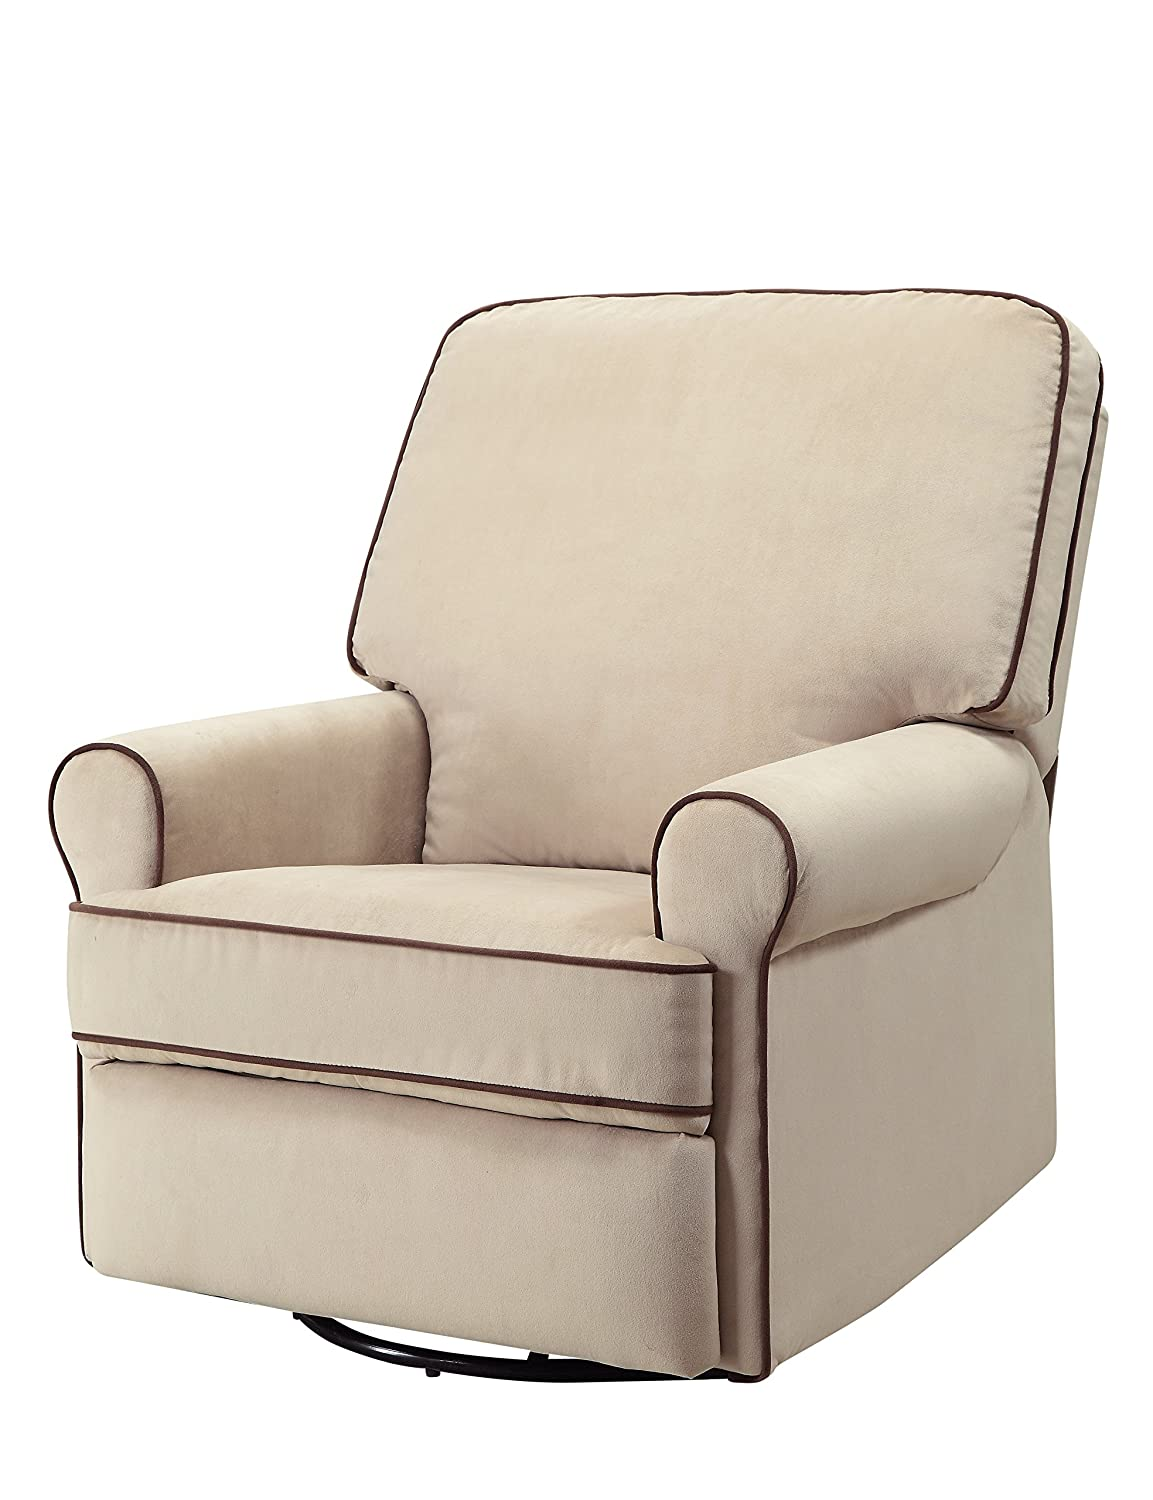 amazoncom pulaski birch hill swivel glider recliner doe with coffee piping kitchen u0026 dining